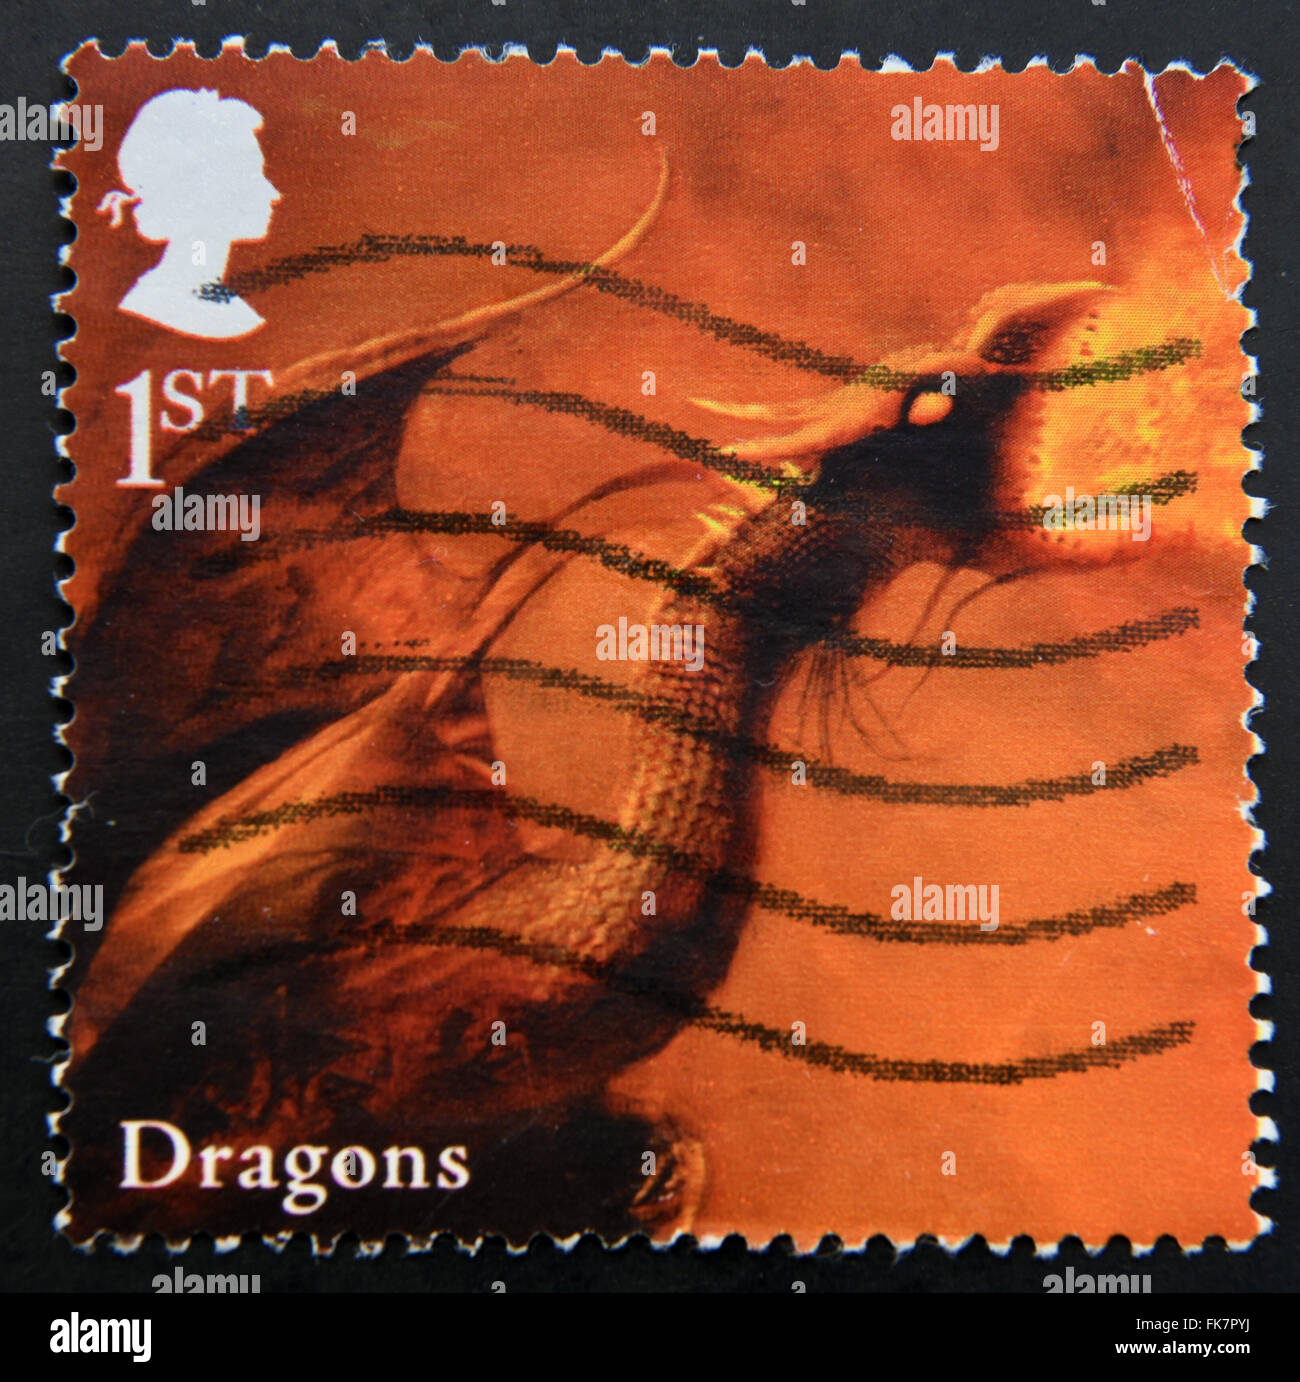 UNITED KINGDOM - CIRCA 2009: A stamp printed in Great Britain dedicated to Mythical Creatures, shows dragon, circa - Stock Image